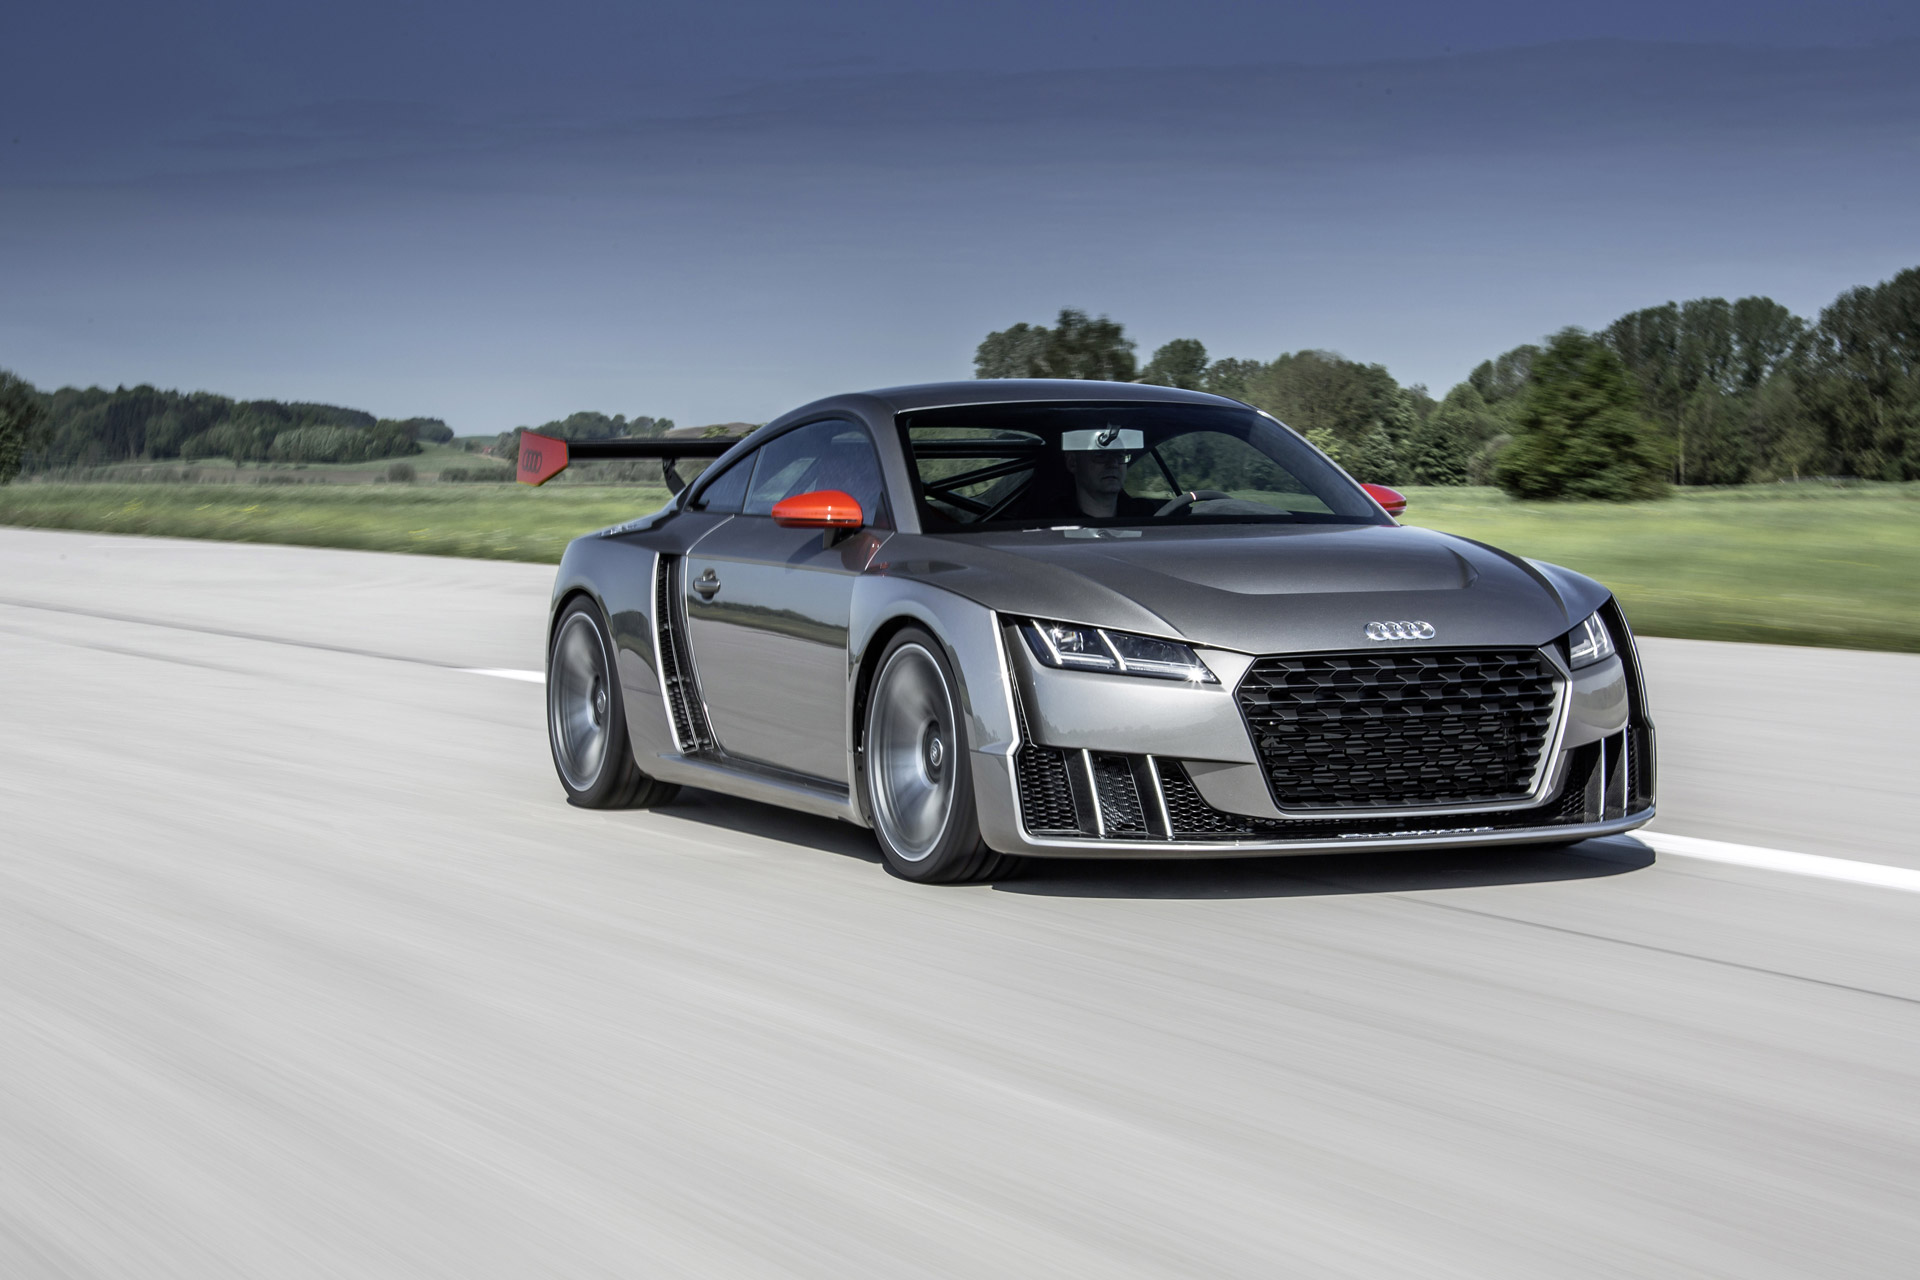 new photos and video of 600 horsepower audi tt clubsport. Black Bedroom Furniture Sets. Home Design Ideas